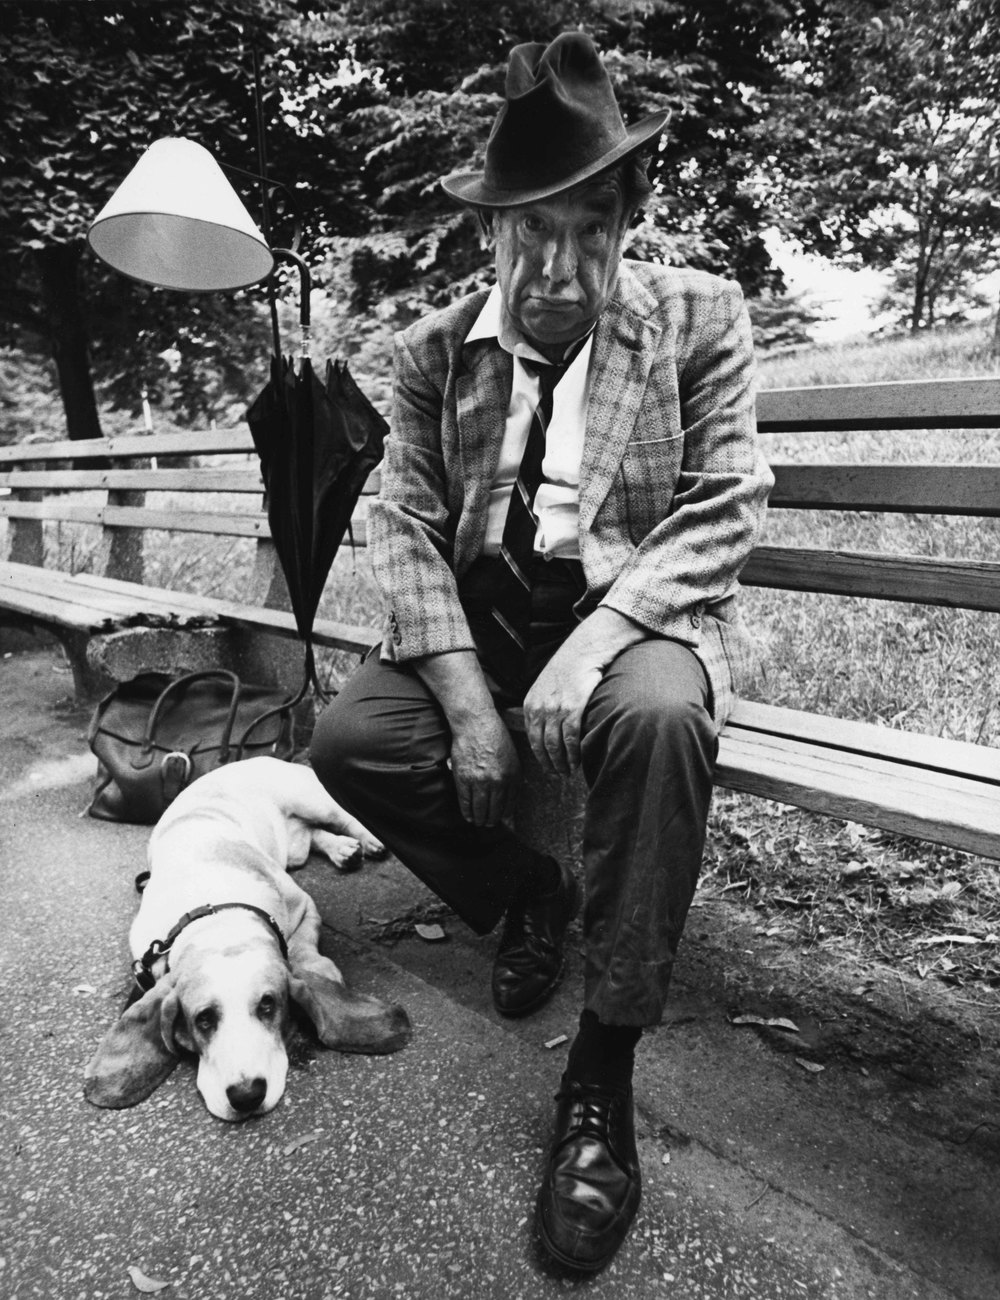 16_9_Man and dog in the park_Dan Wynn Archive.jpeg